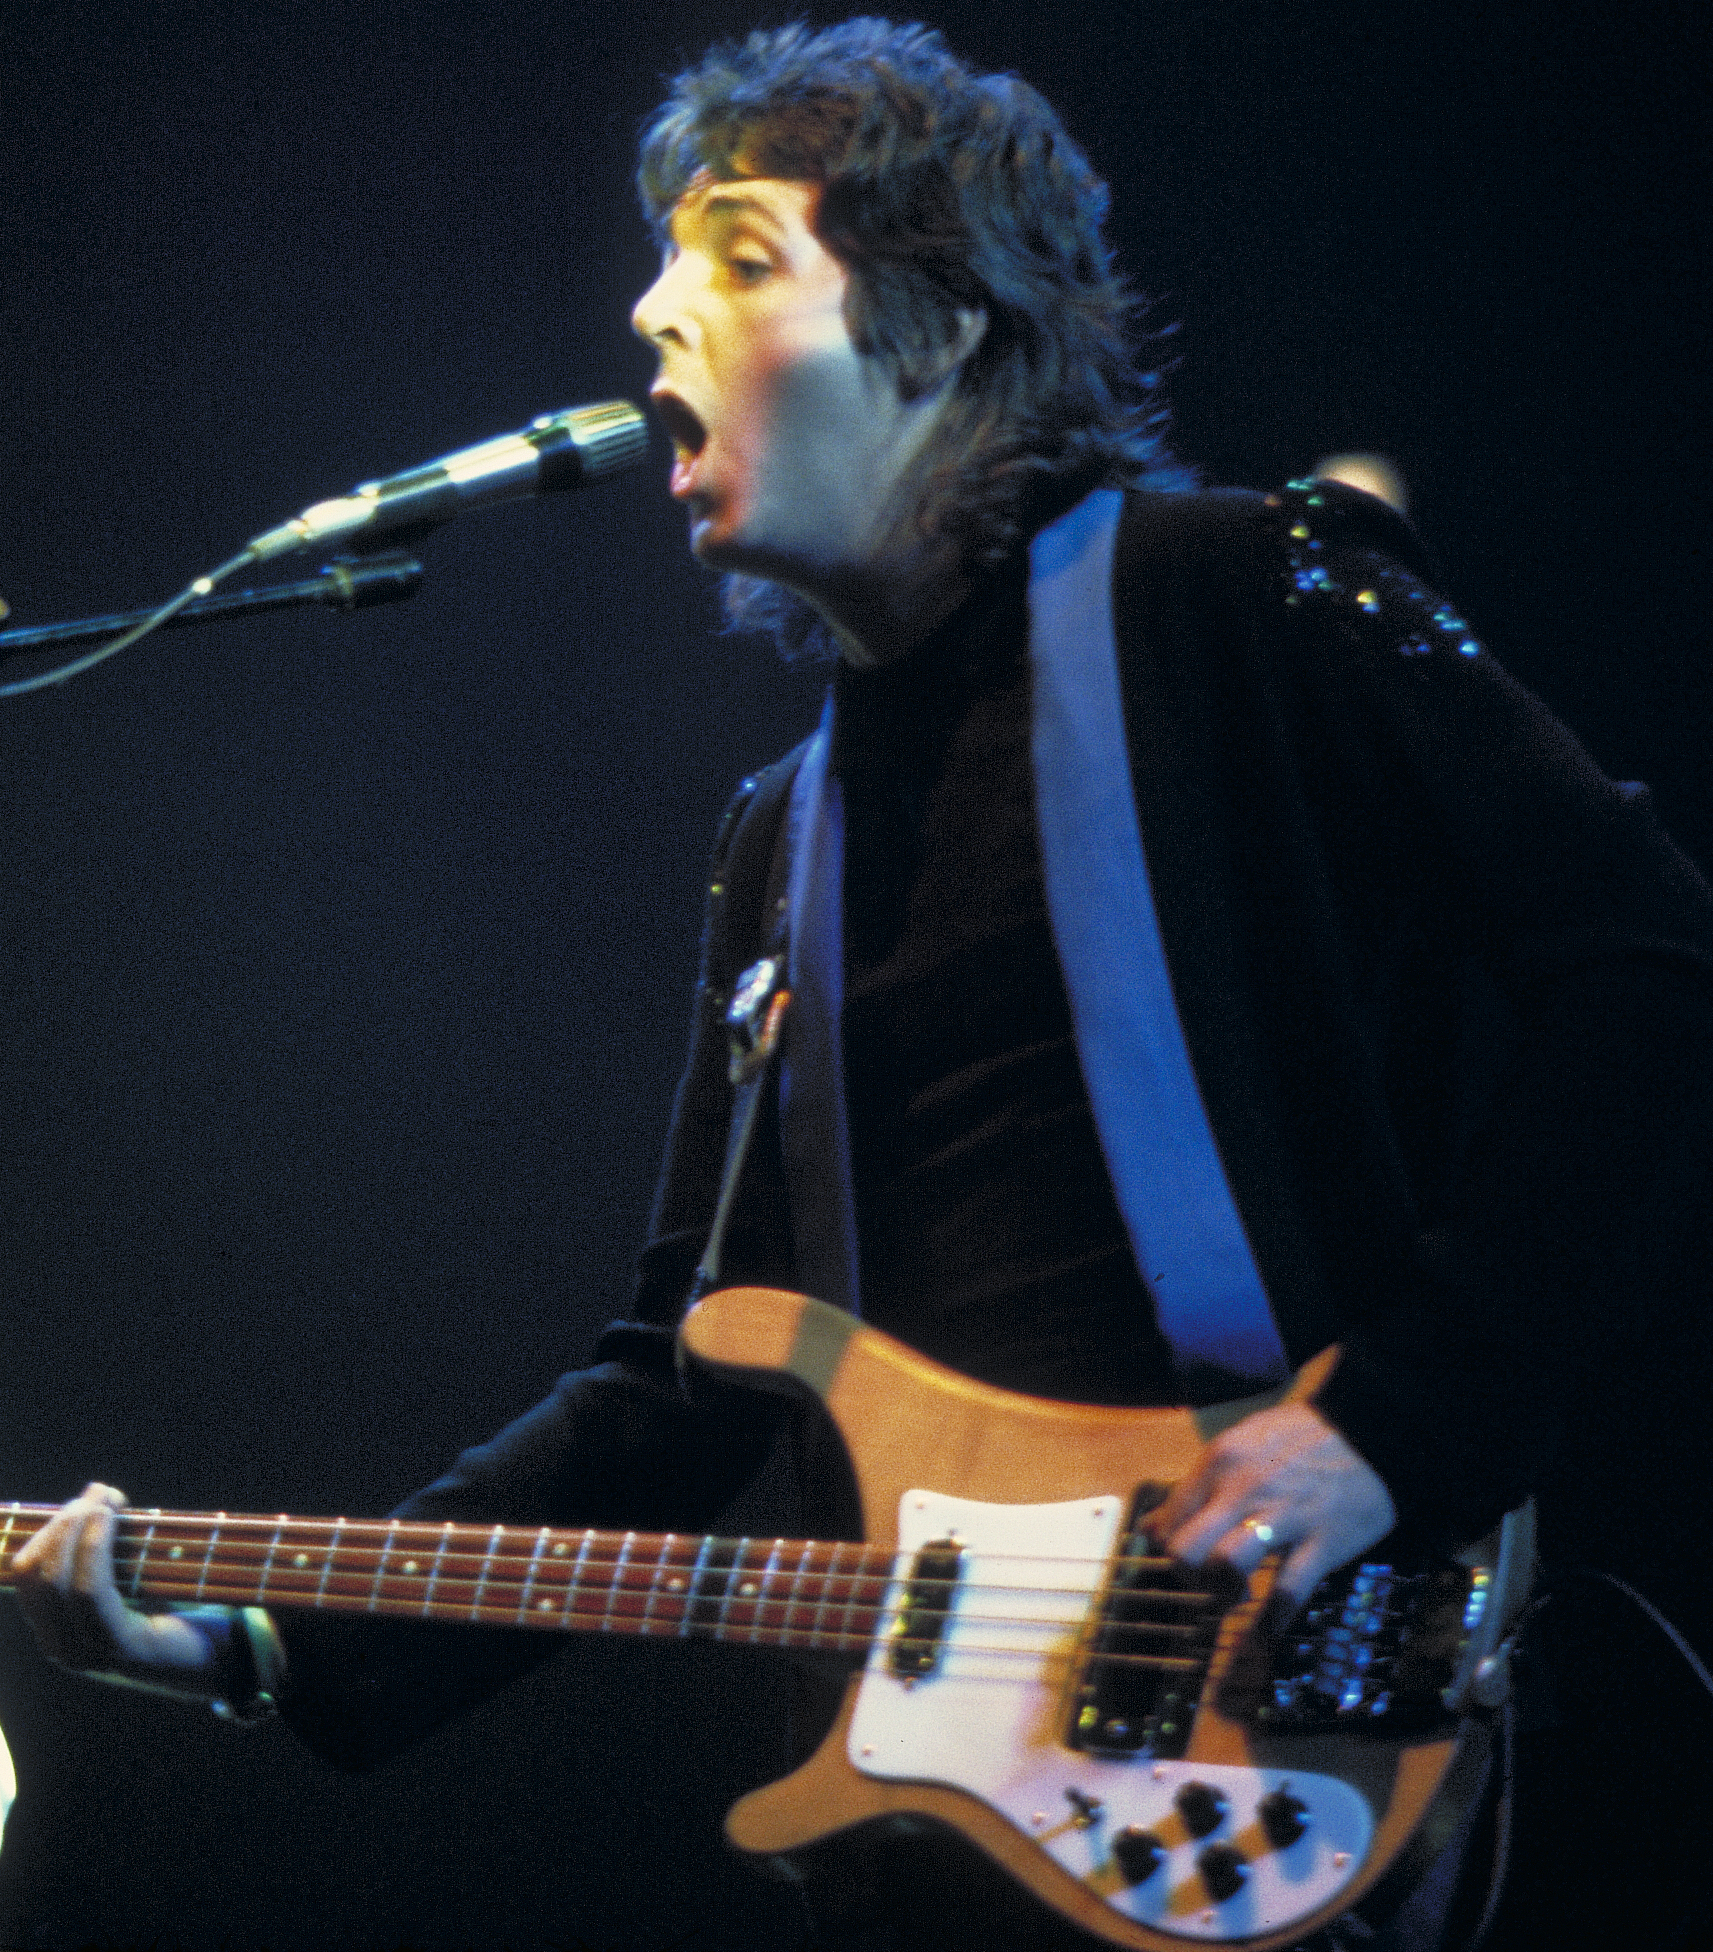 Coloured image of a long-haired McCartney in the 1970s playing a guitar.